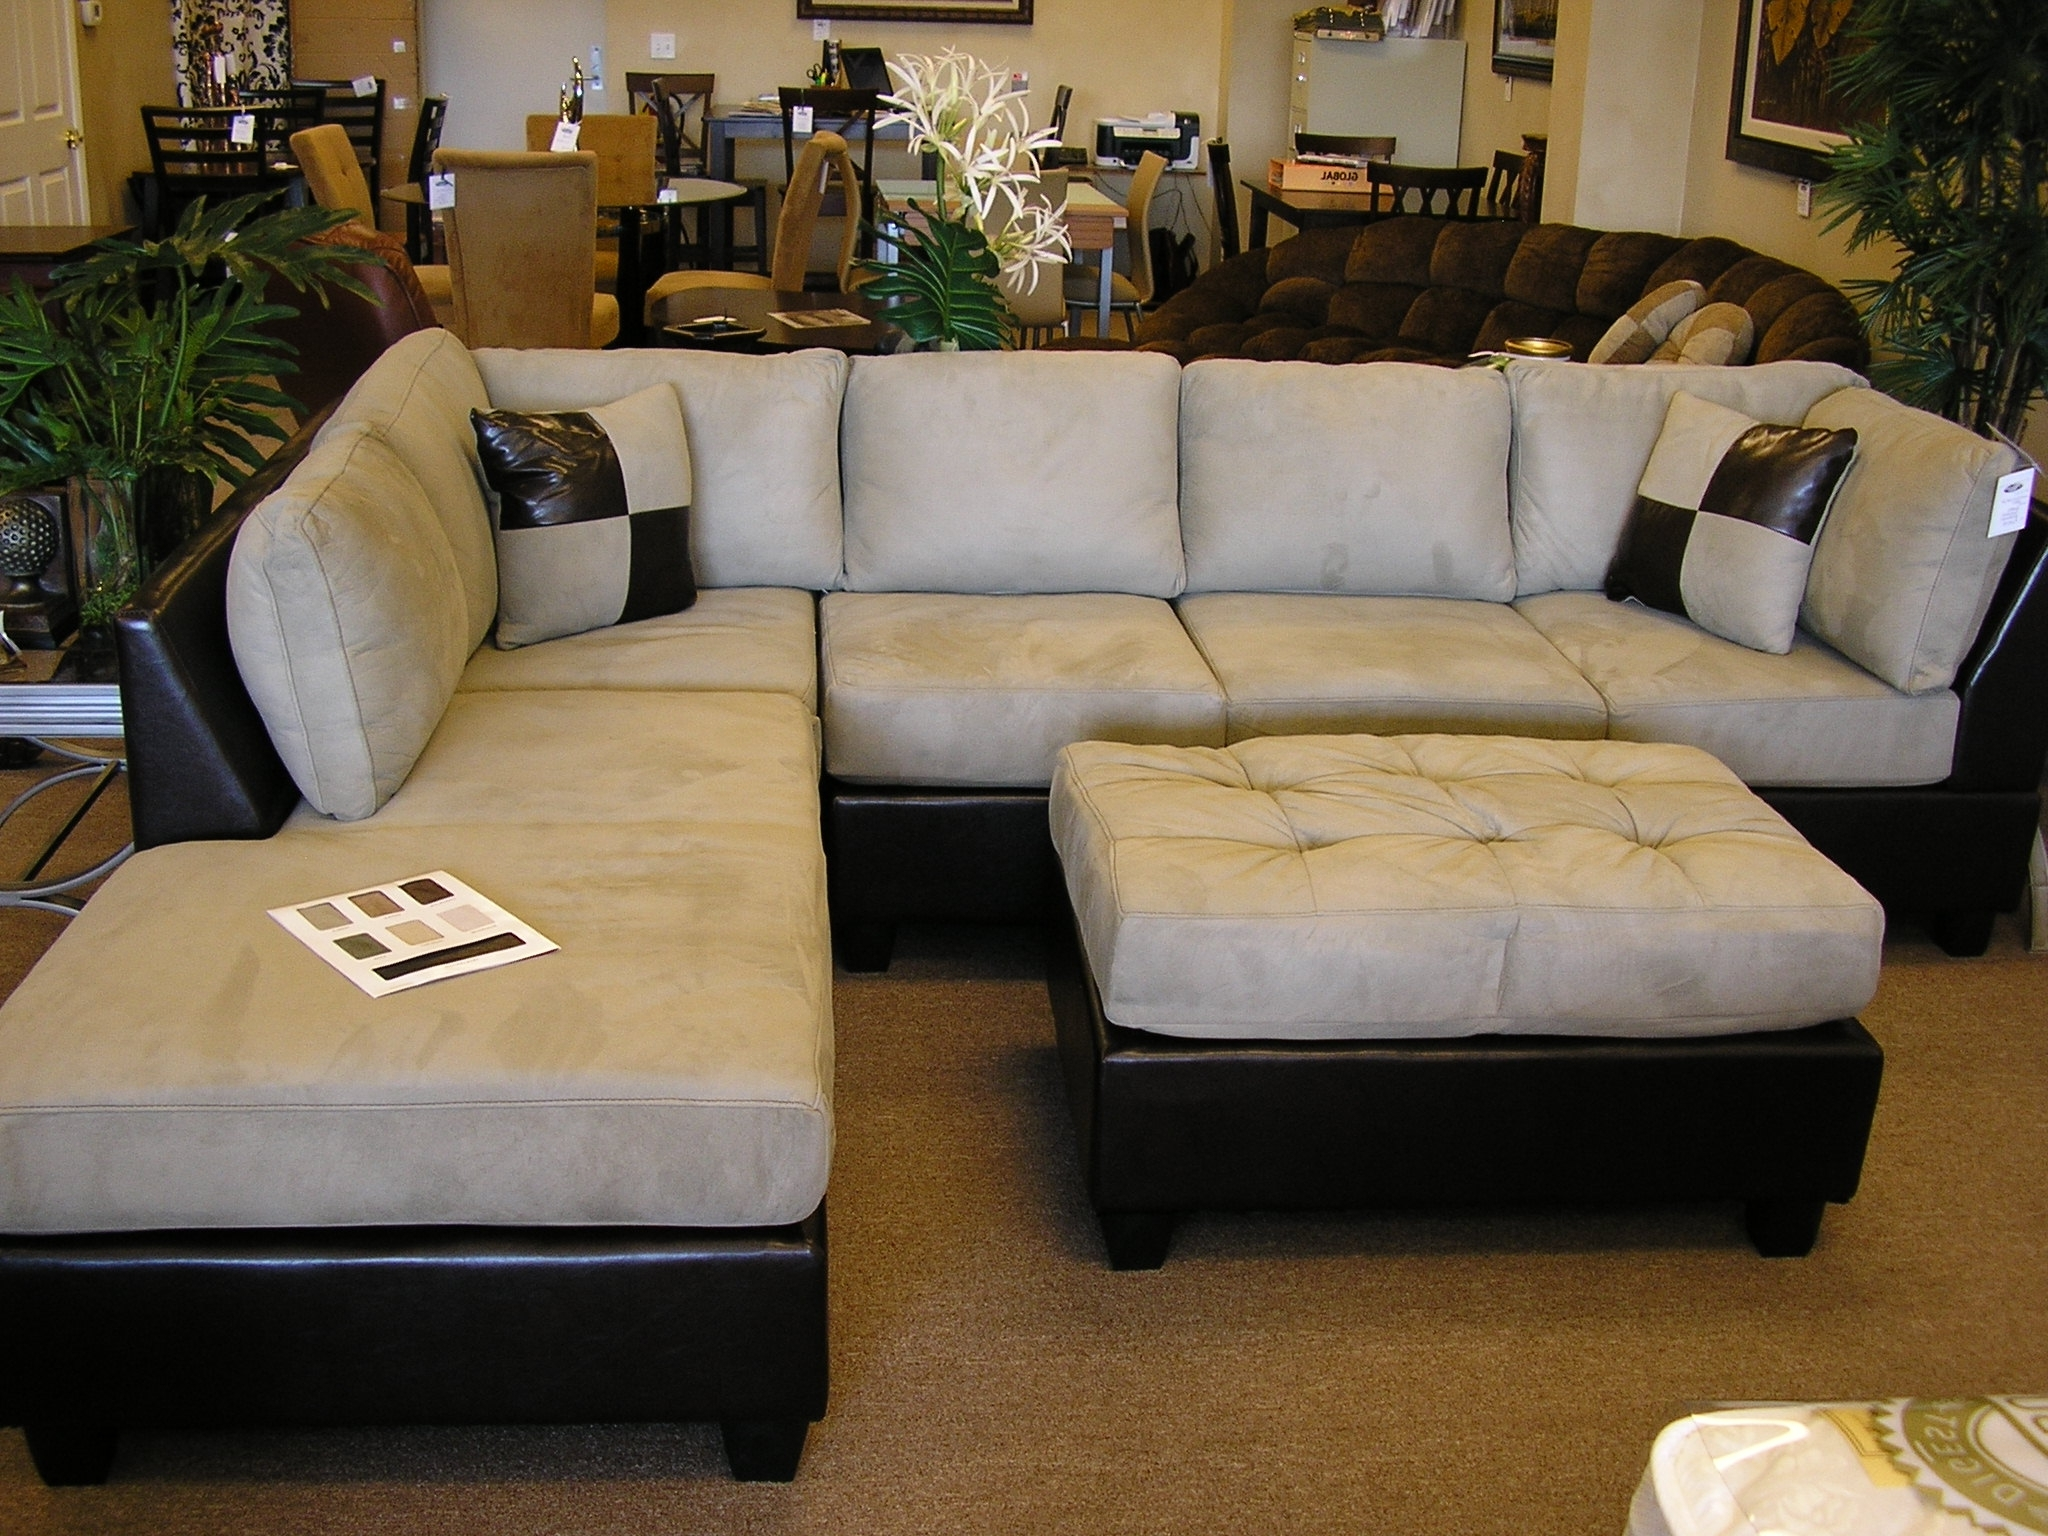 Famous Amazing Sectional Sofa With Chaise Lounge 32 On Sofas And Couches Pertaining To Couches With Chaise Lounge (View 9 of 15)